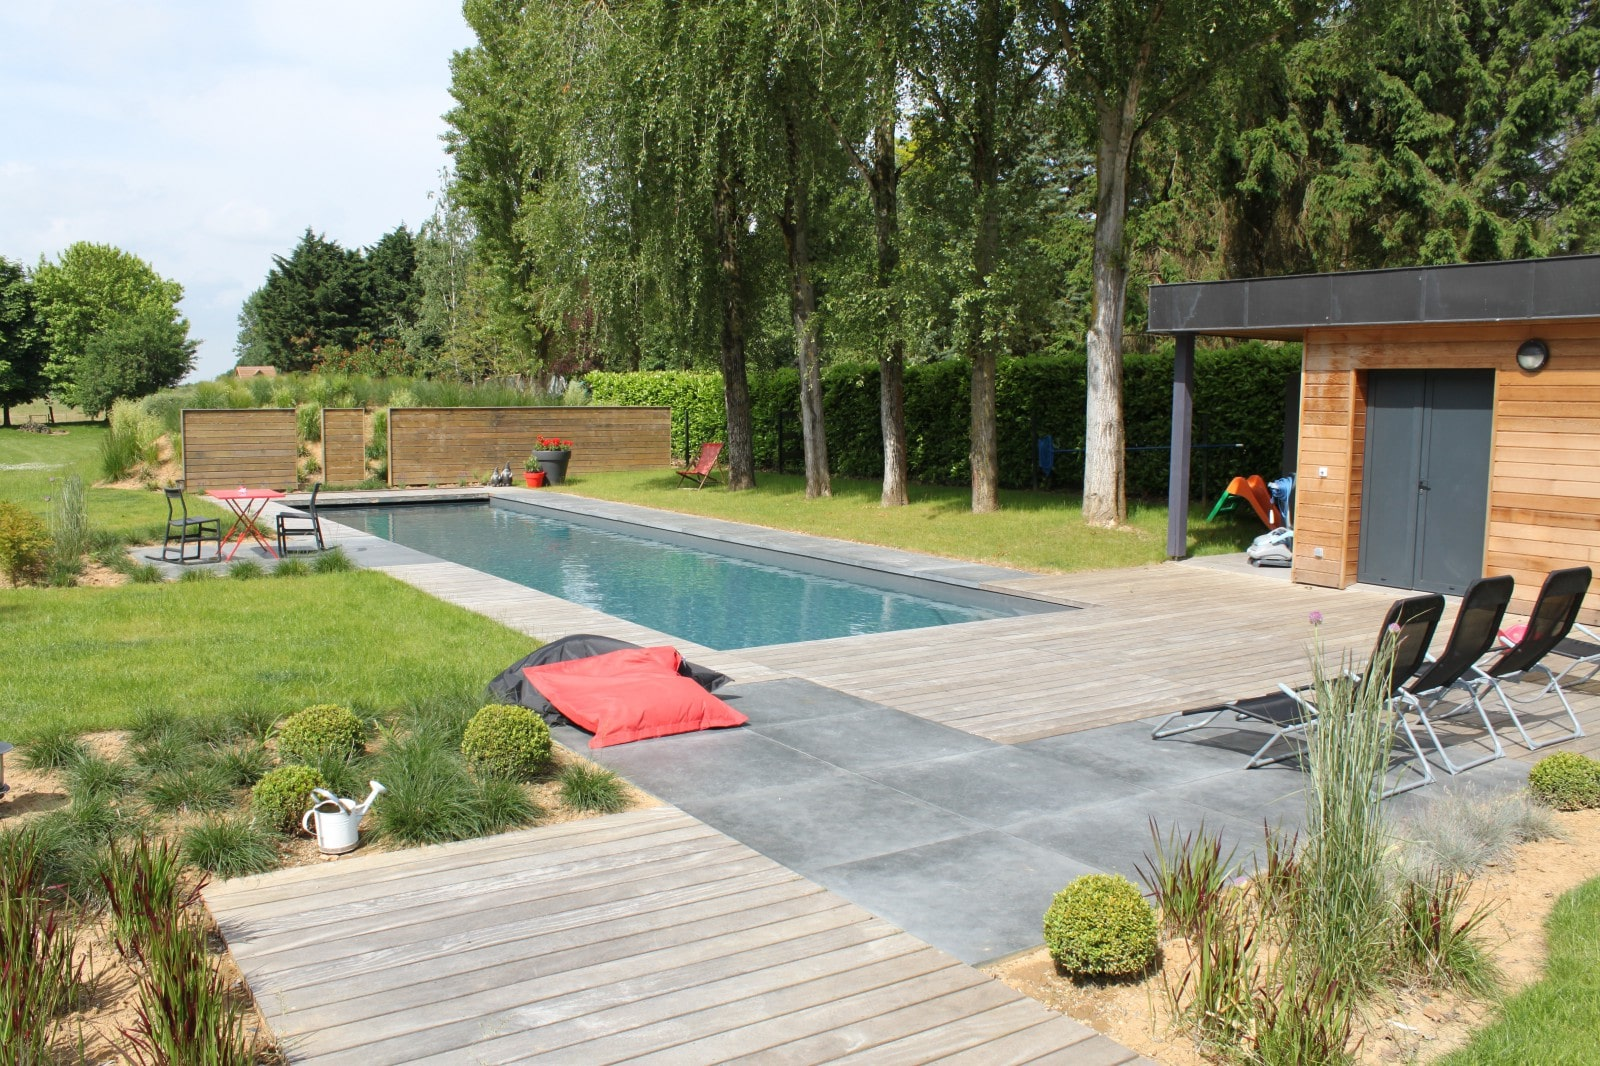 Paysagiste cr ation de terrasse piscine arras 62 pas for Piscine jardin arras